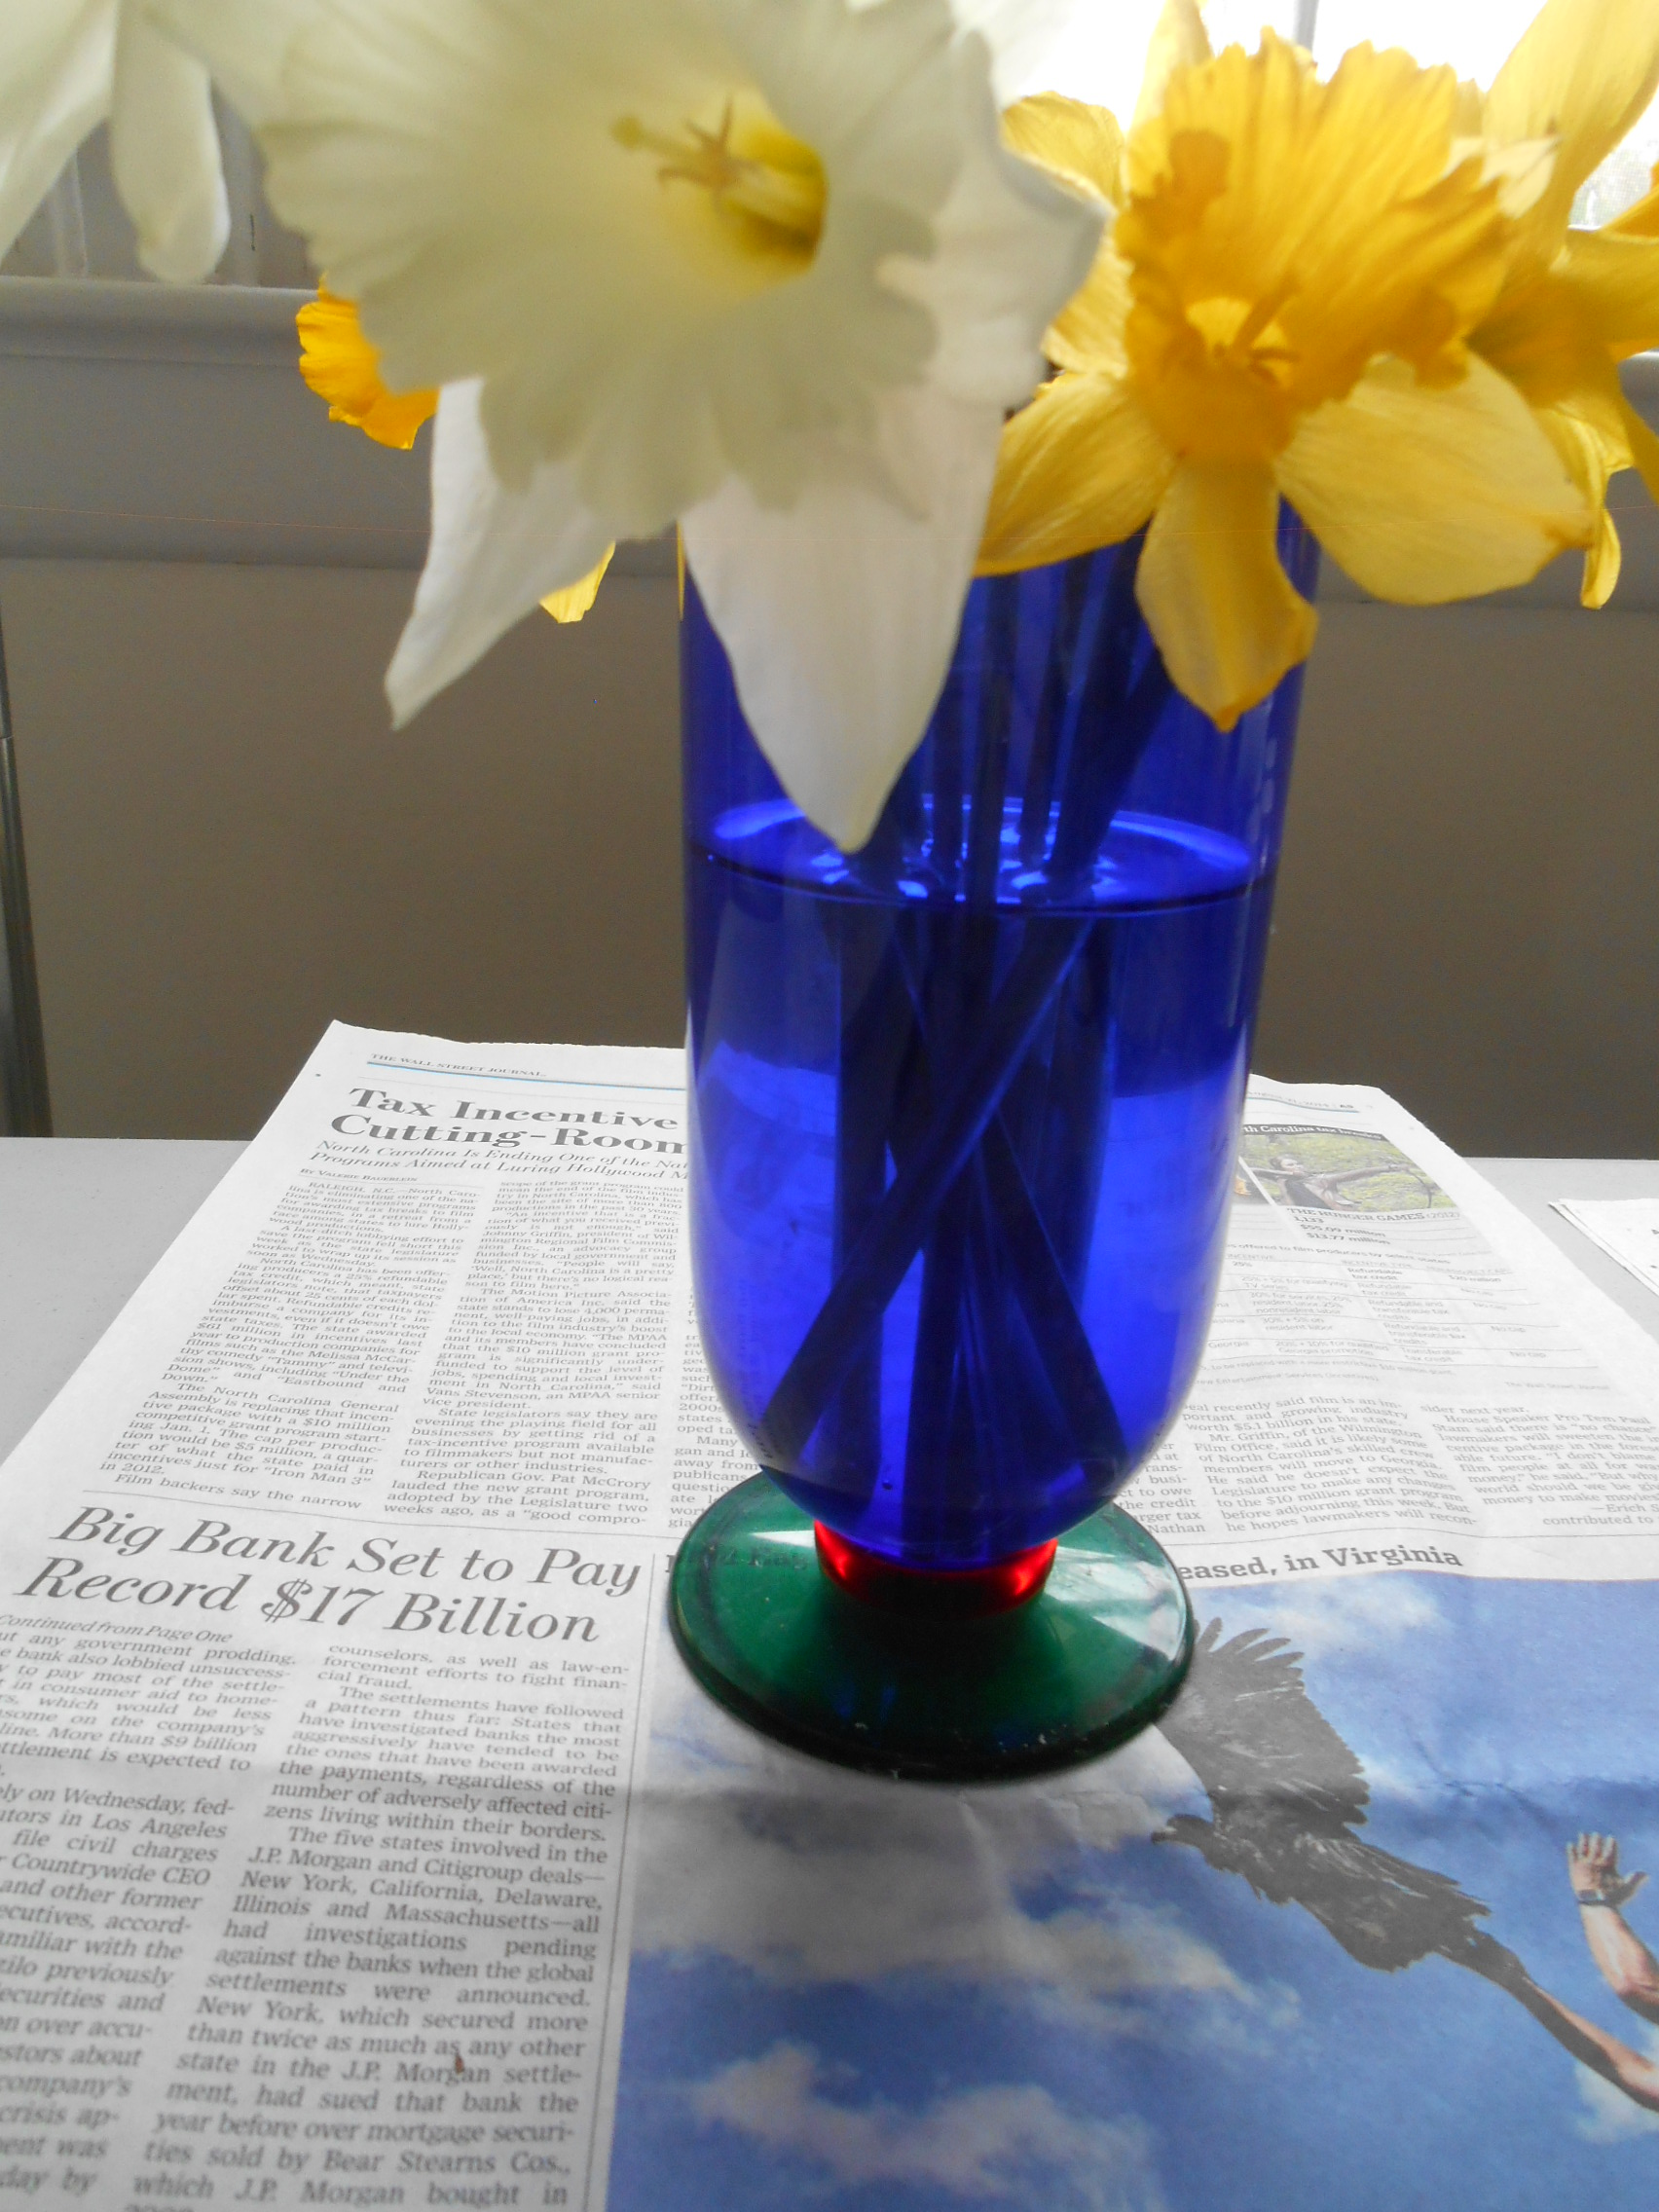 Working on daffodil series for a month .... inhaling the golden yellow!